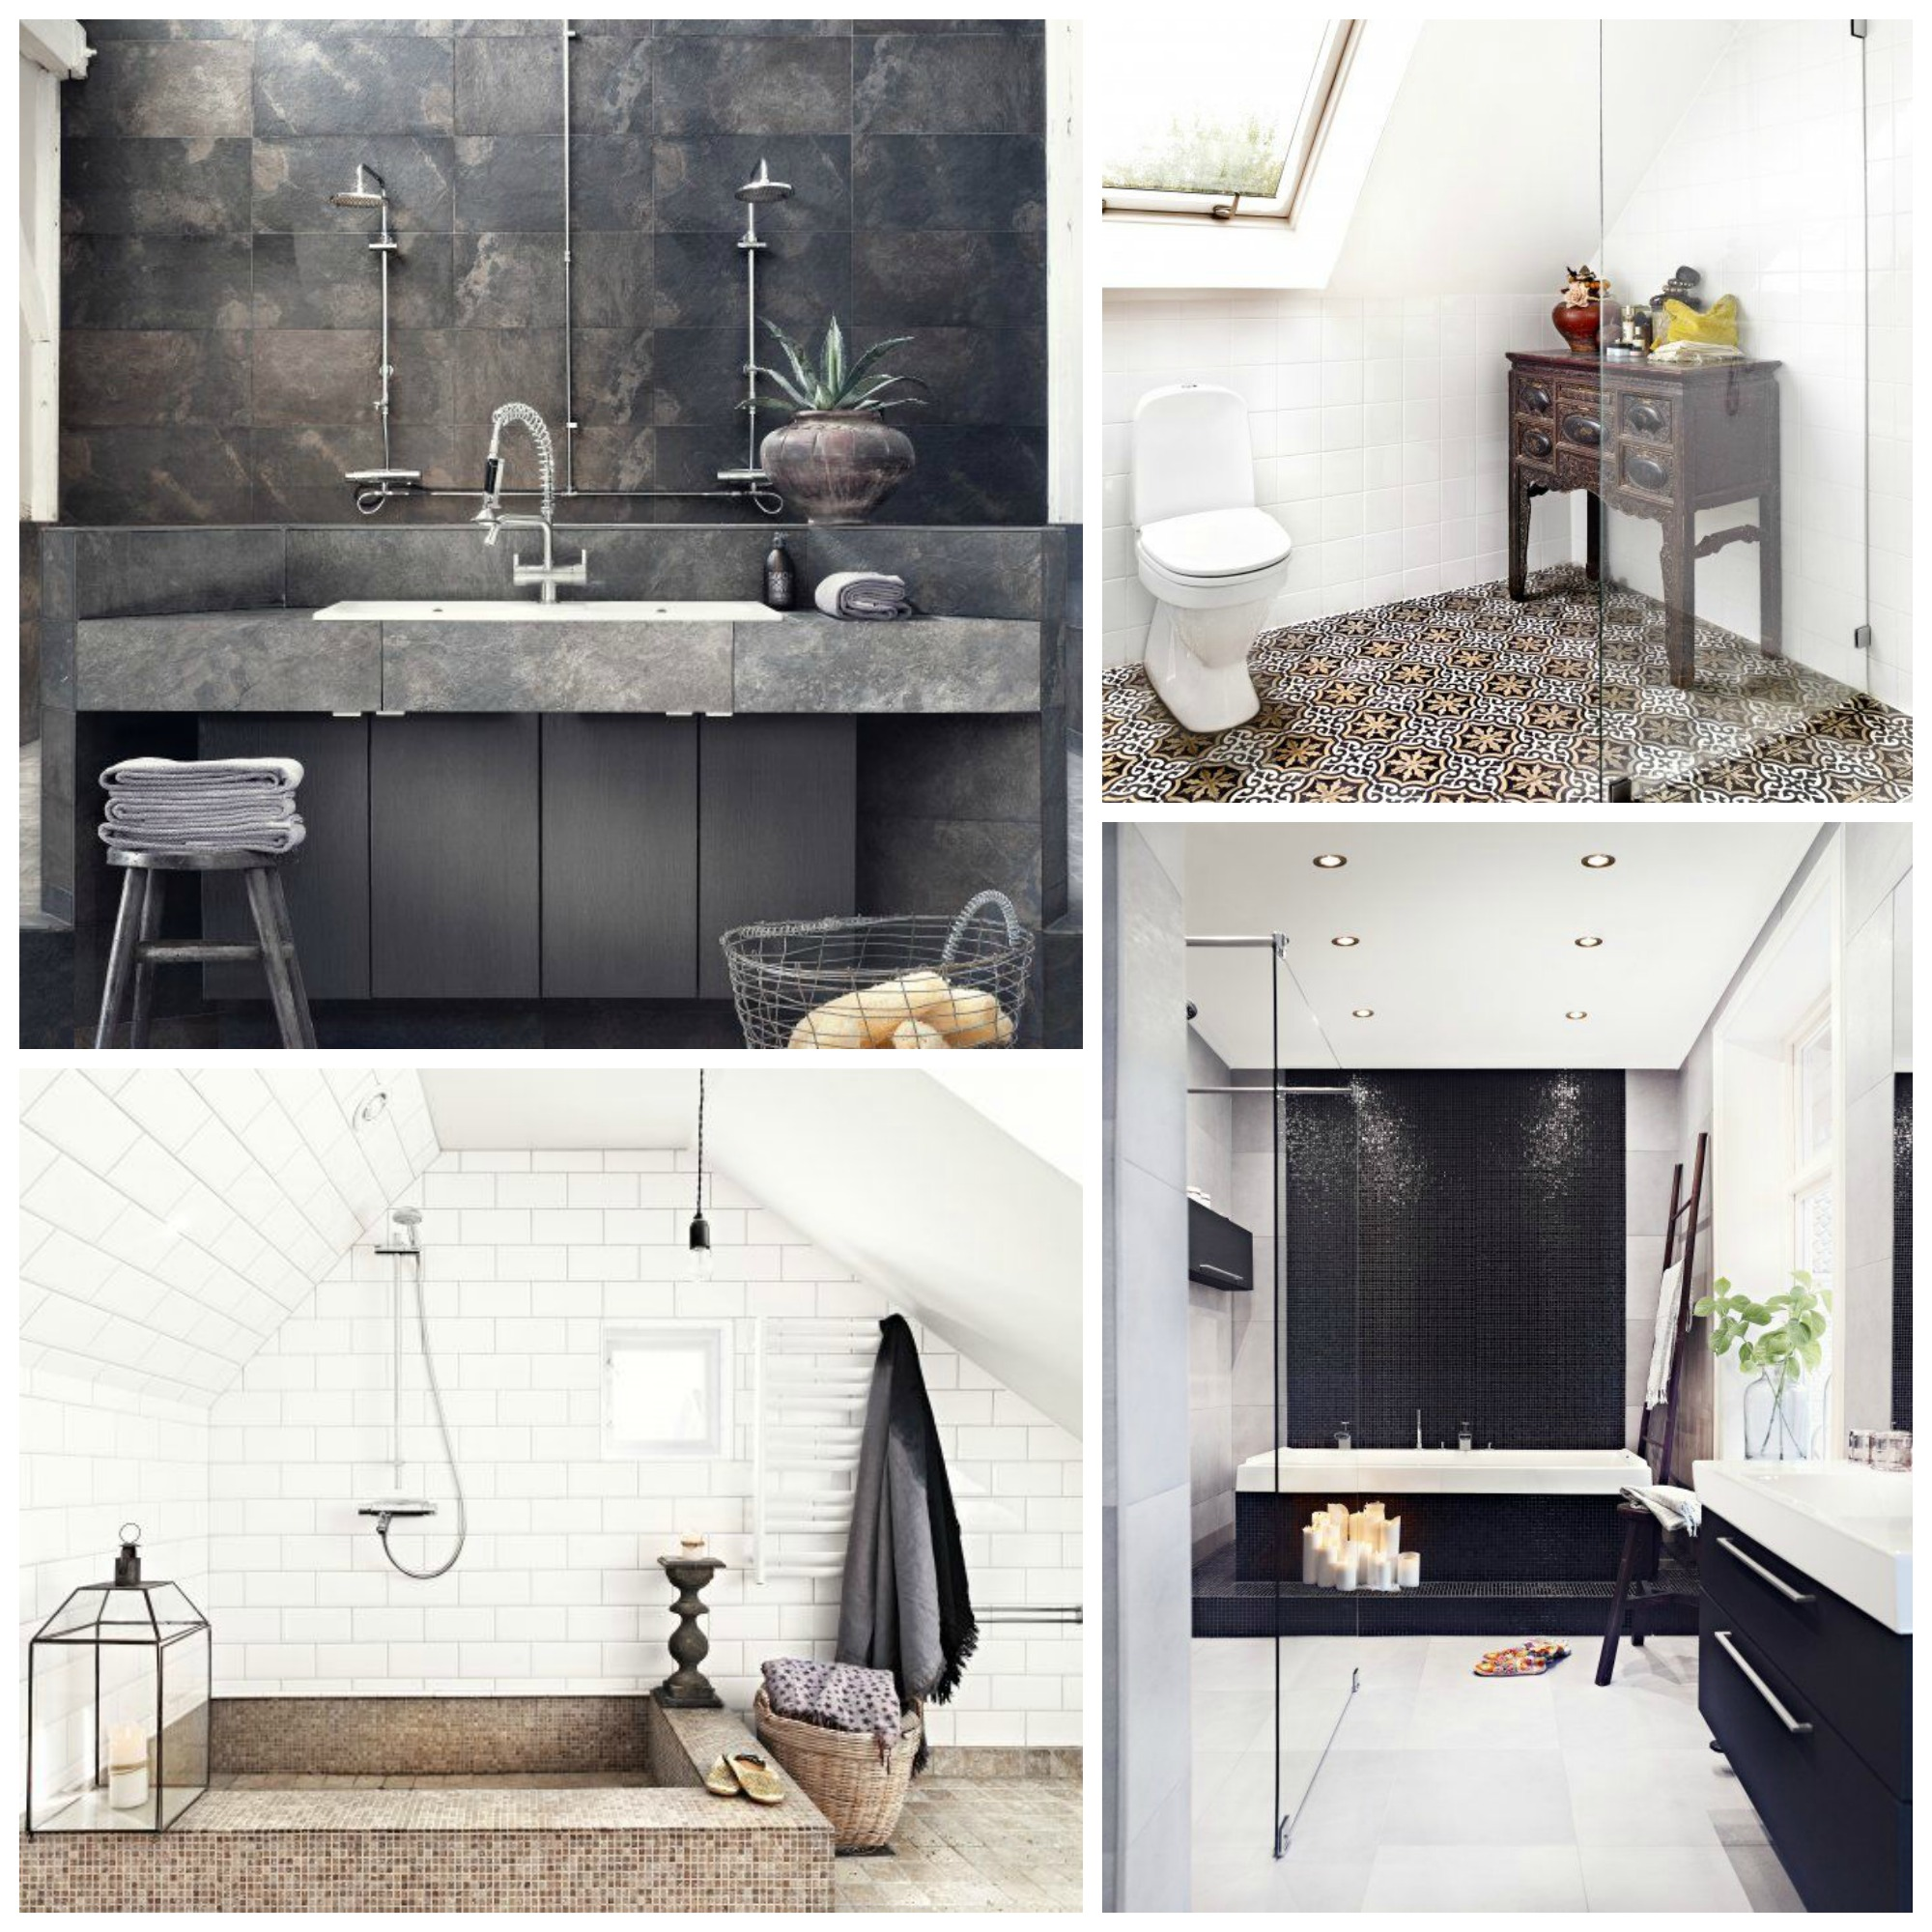 Imagenes De Baños Rusticos Using The Tactile Textures Trend In Bathroom Design